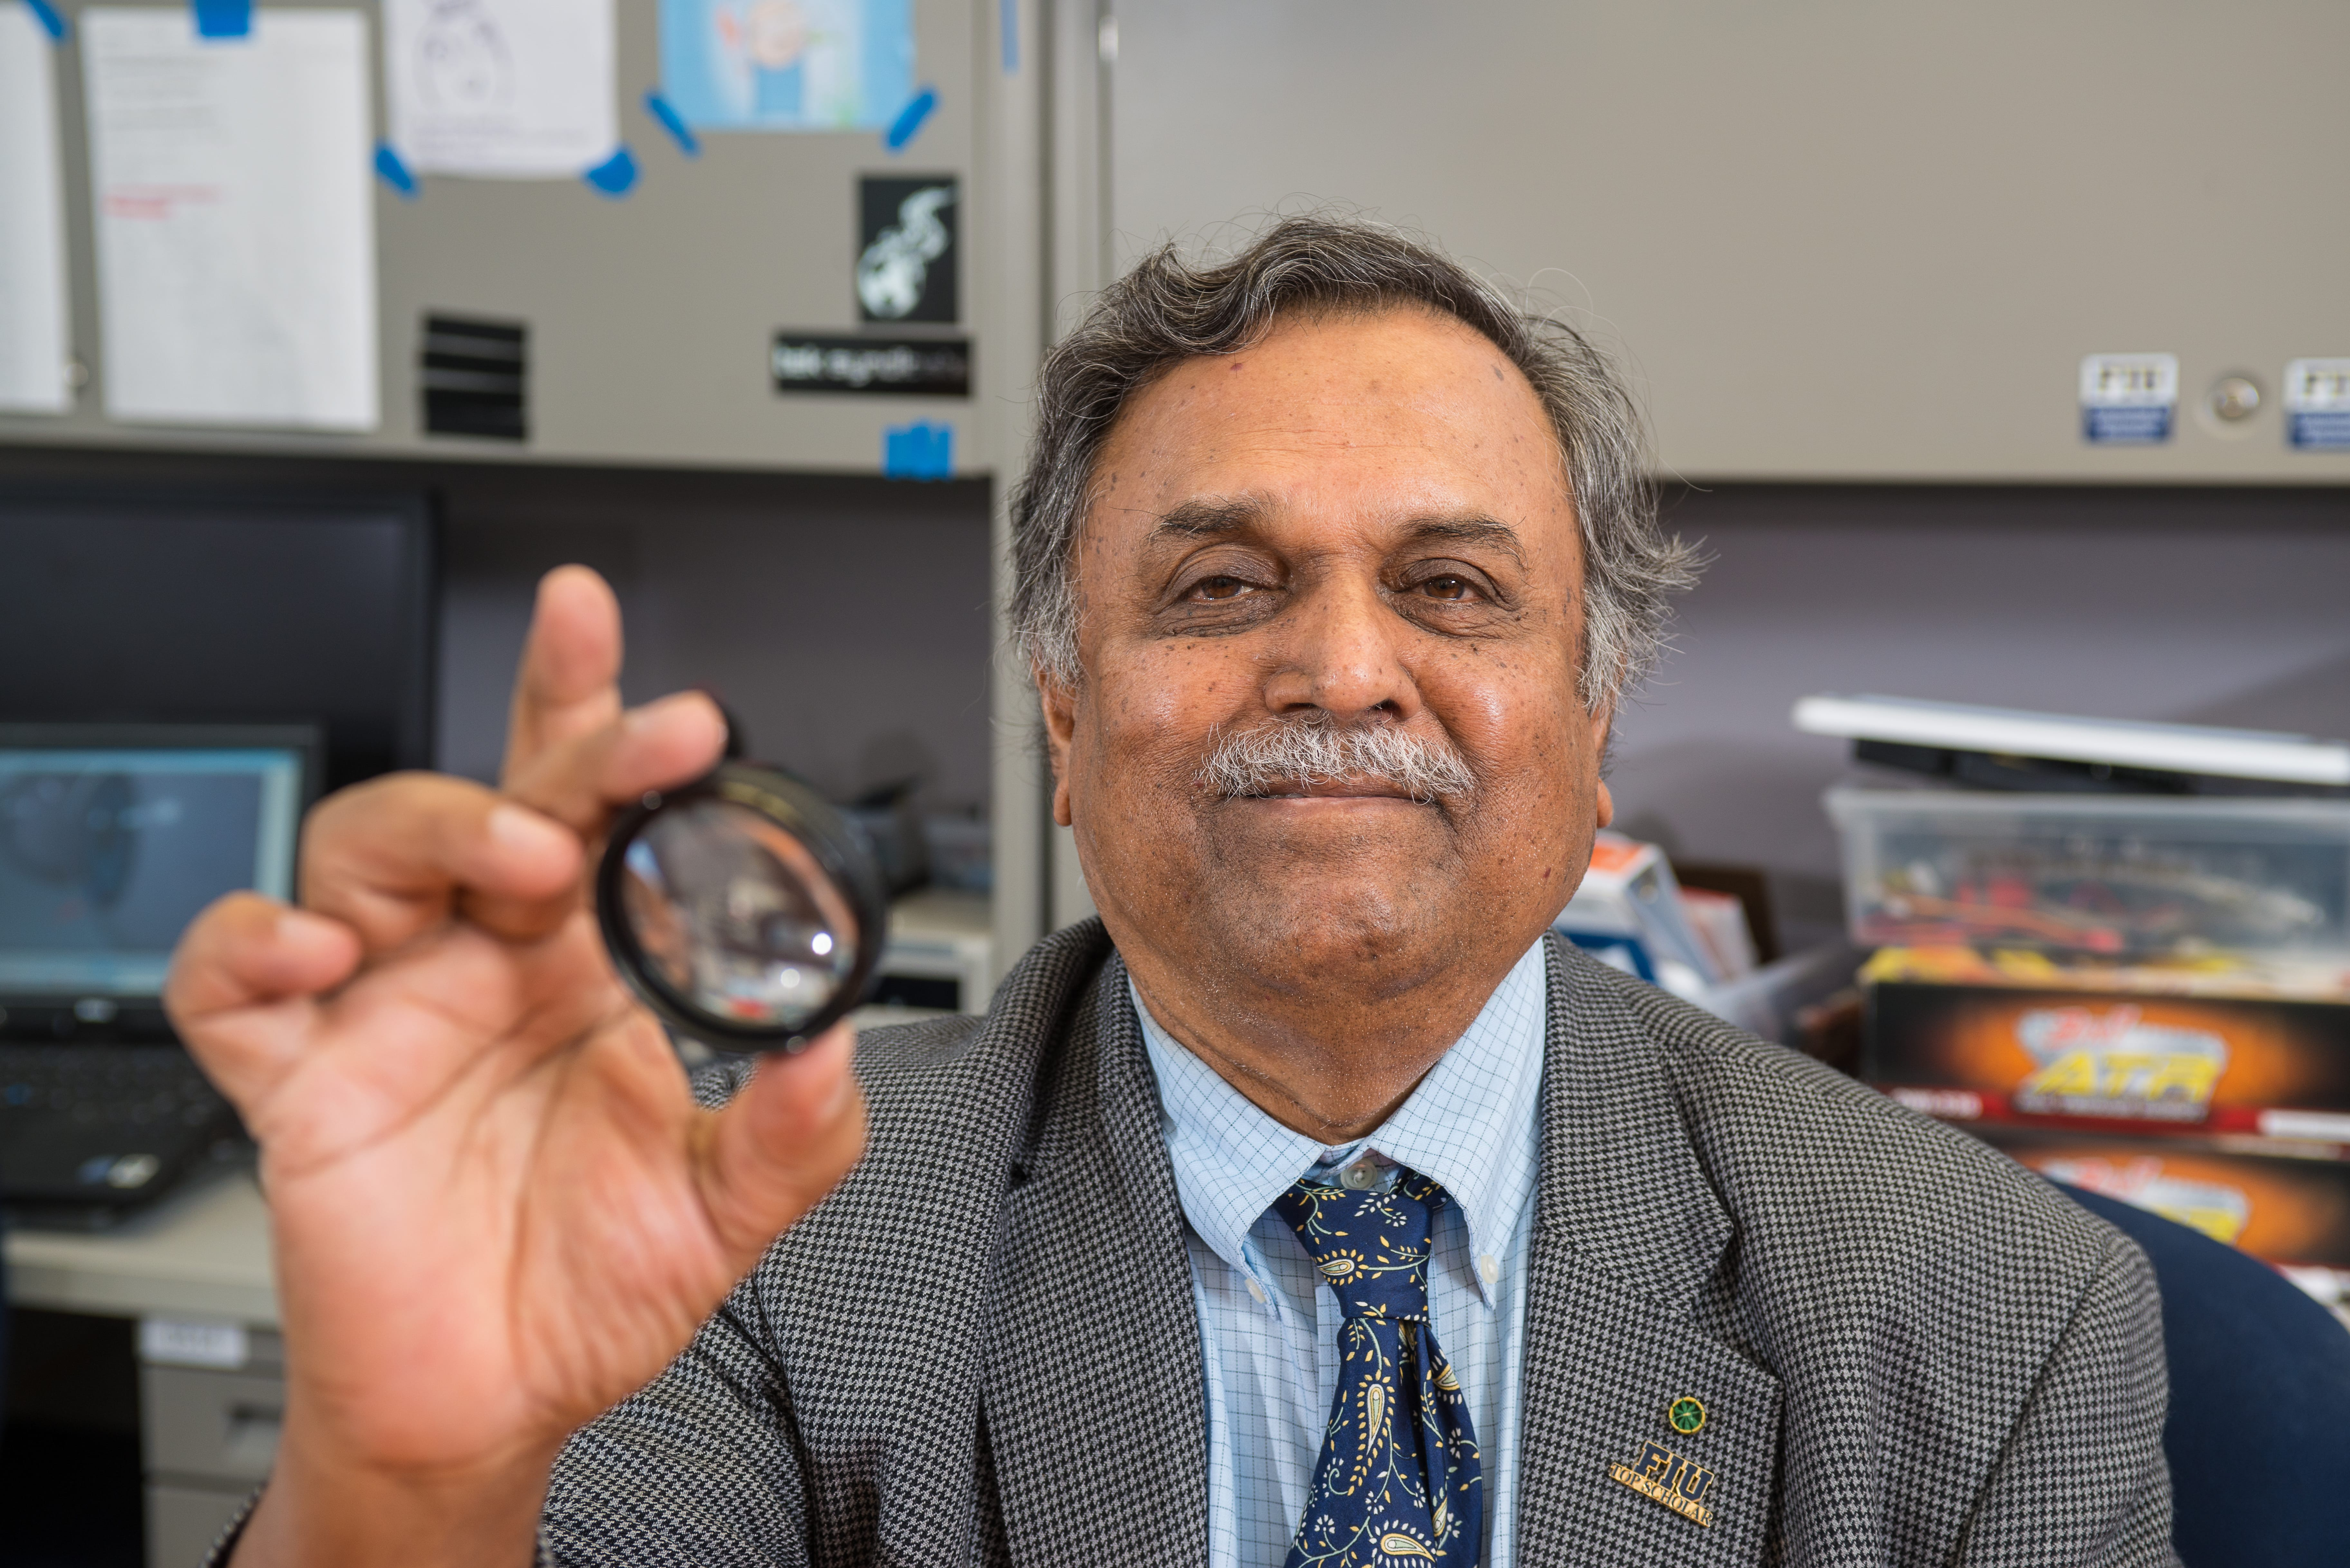 New Eye Implant Device could Save Glaucoma Patients' vision | School of Computing and Information Sciences 2